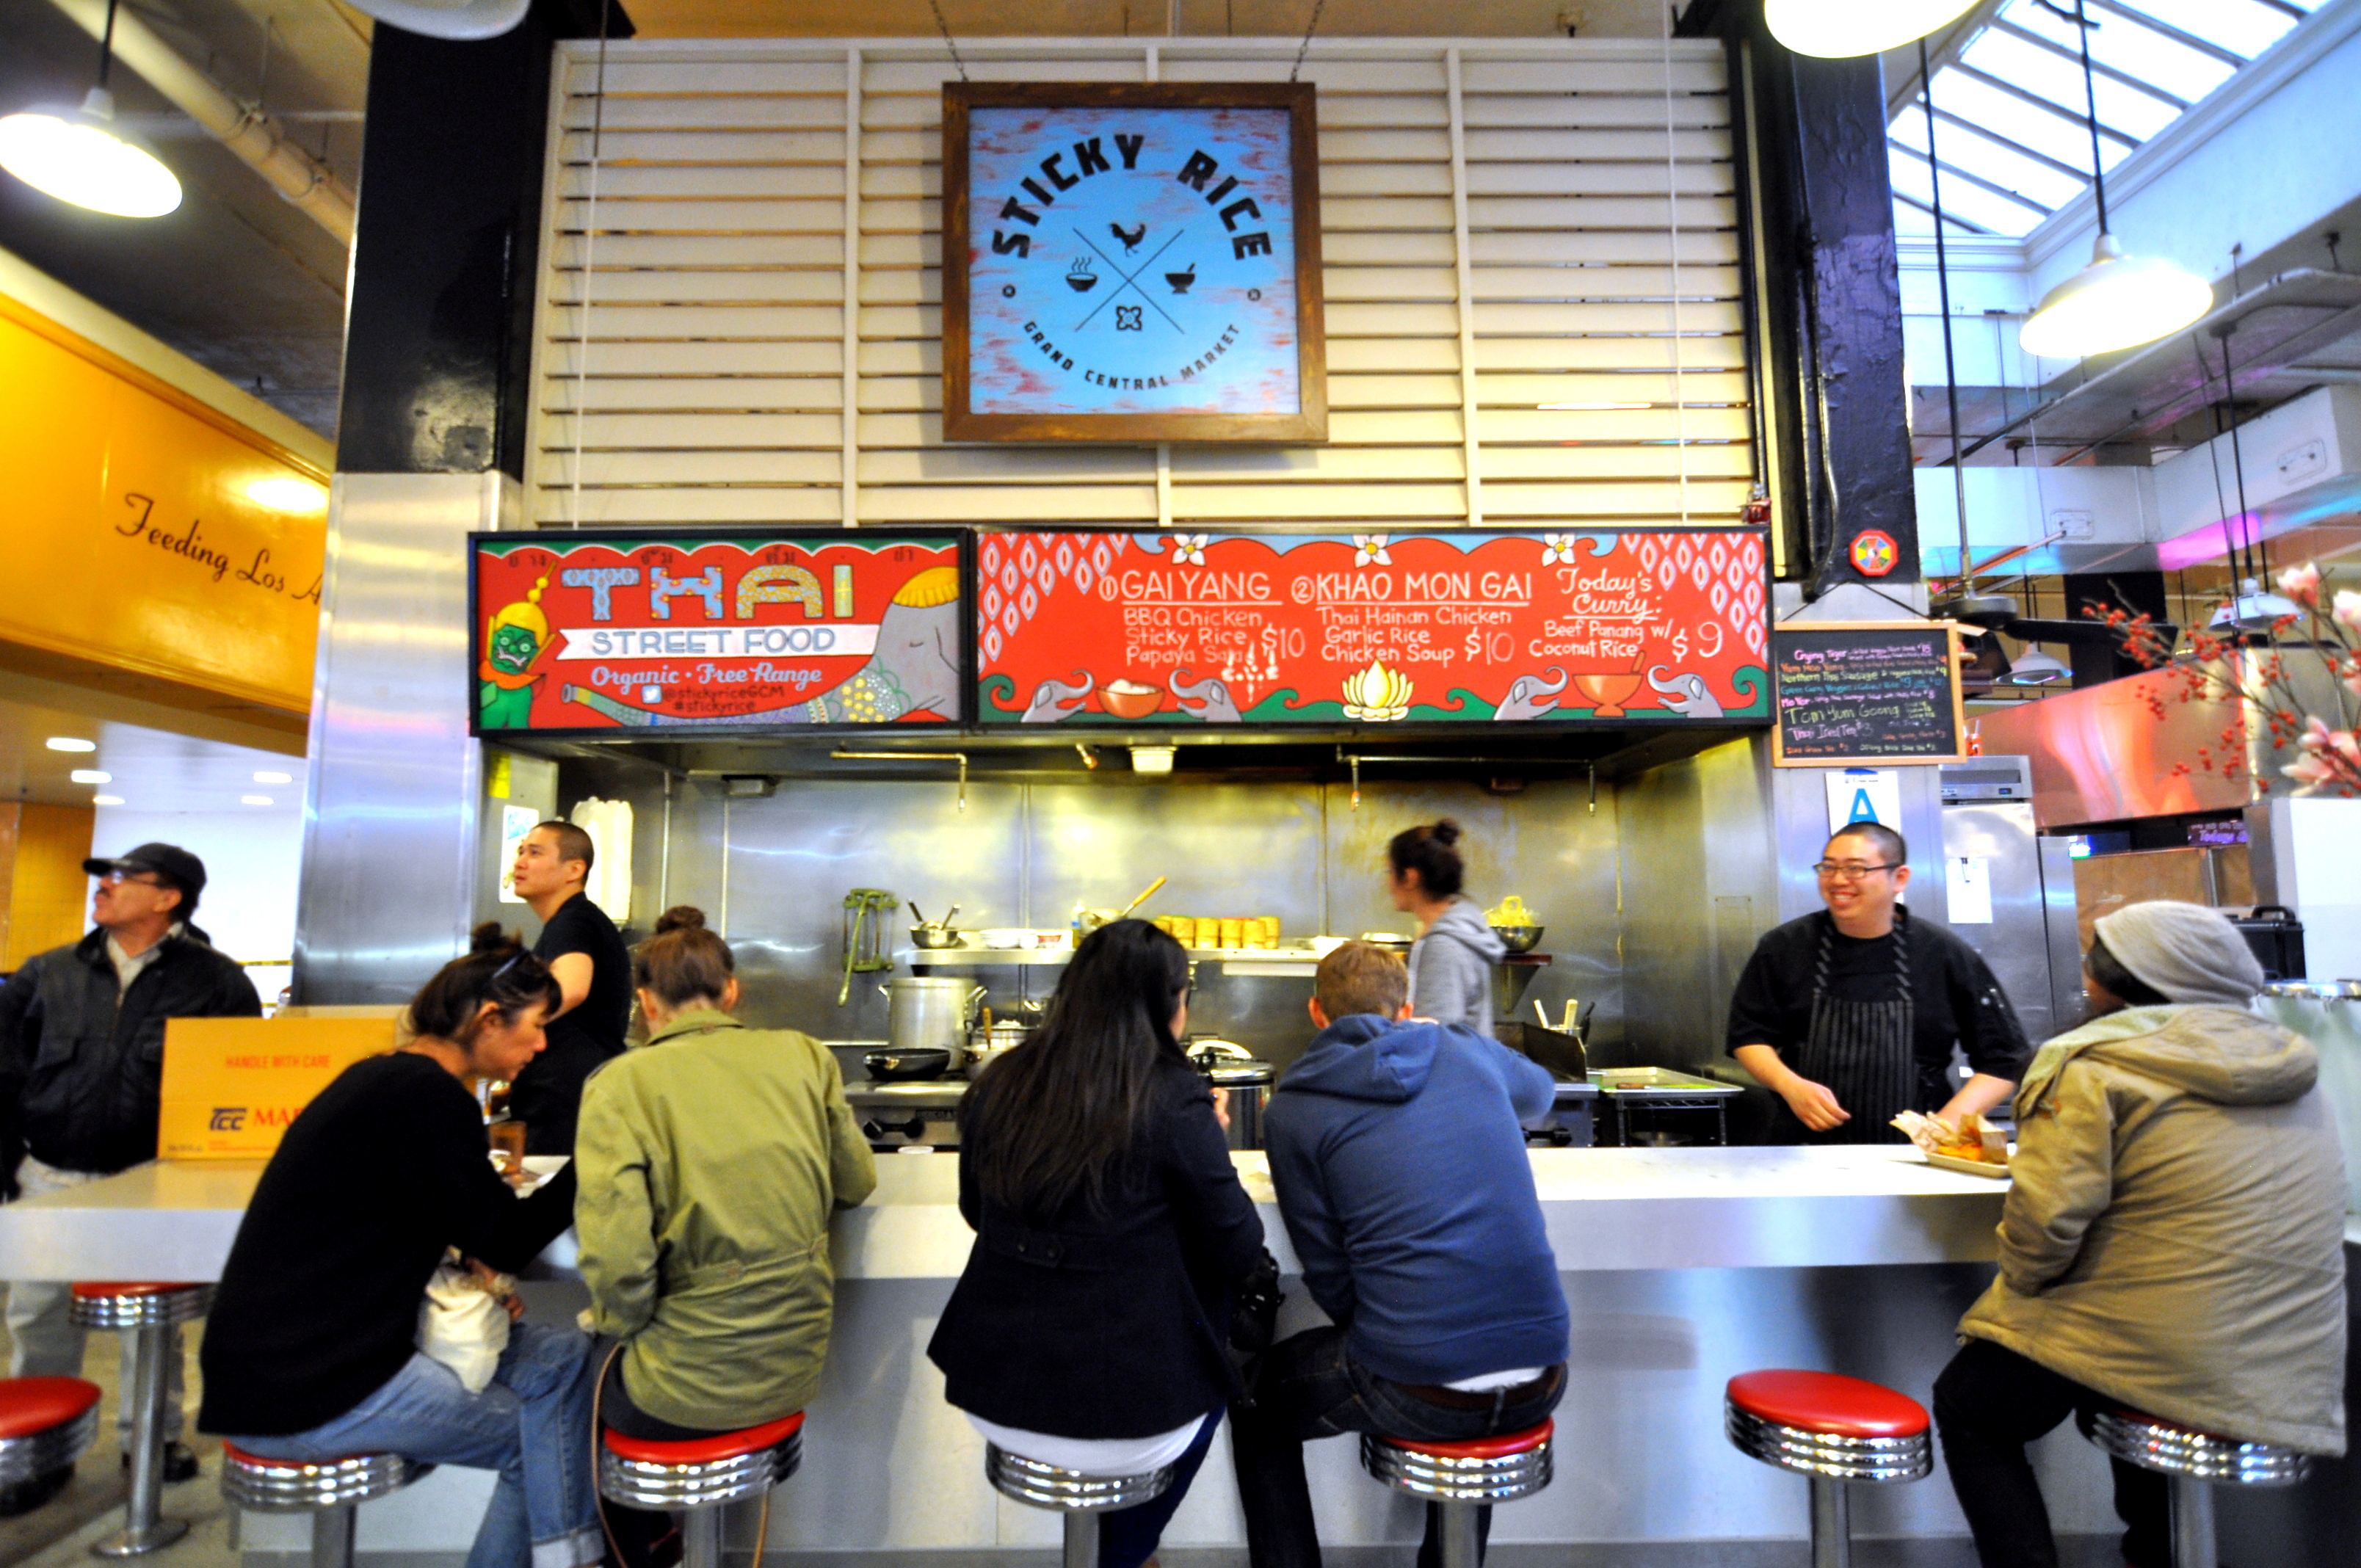 10 Delicious Things to Eat at Grand Central Market